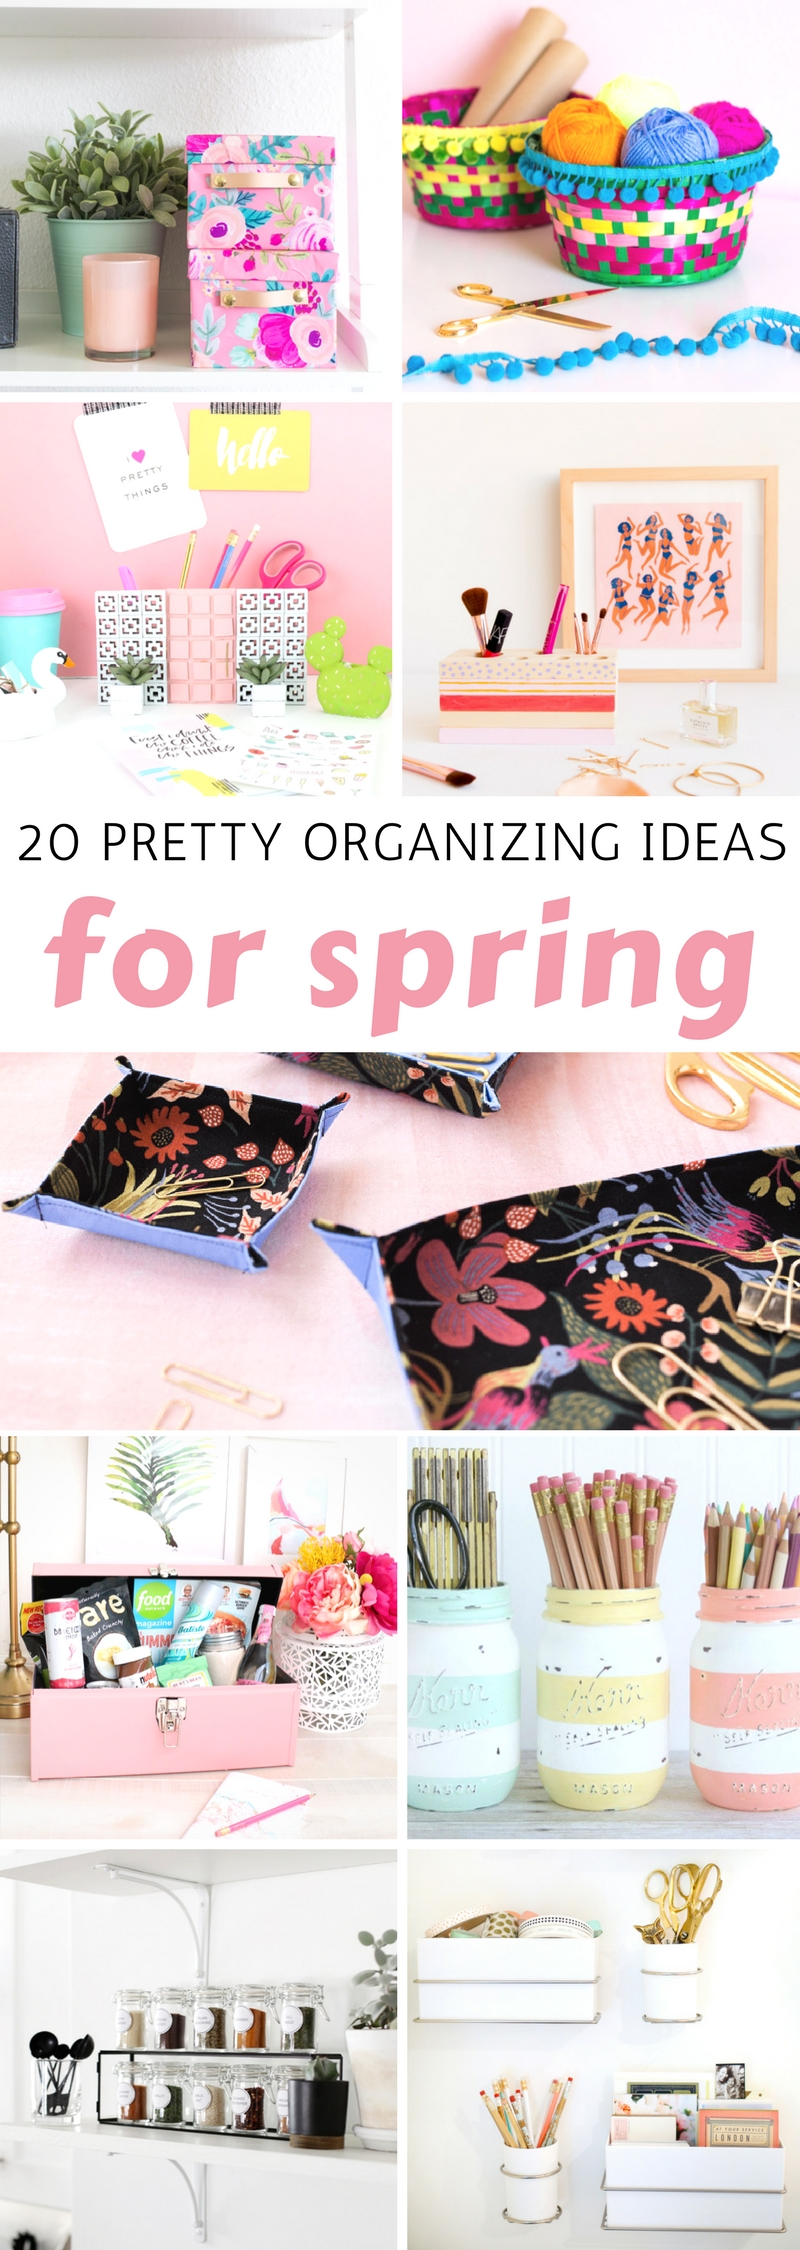 Pretty Organizing Ideas for Spring